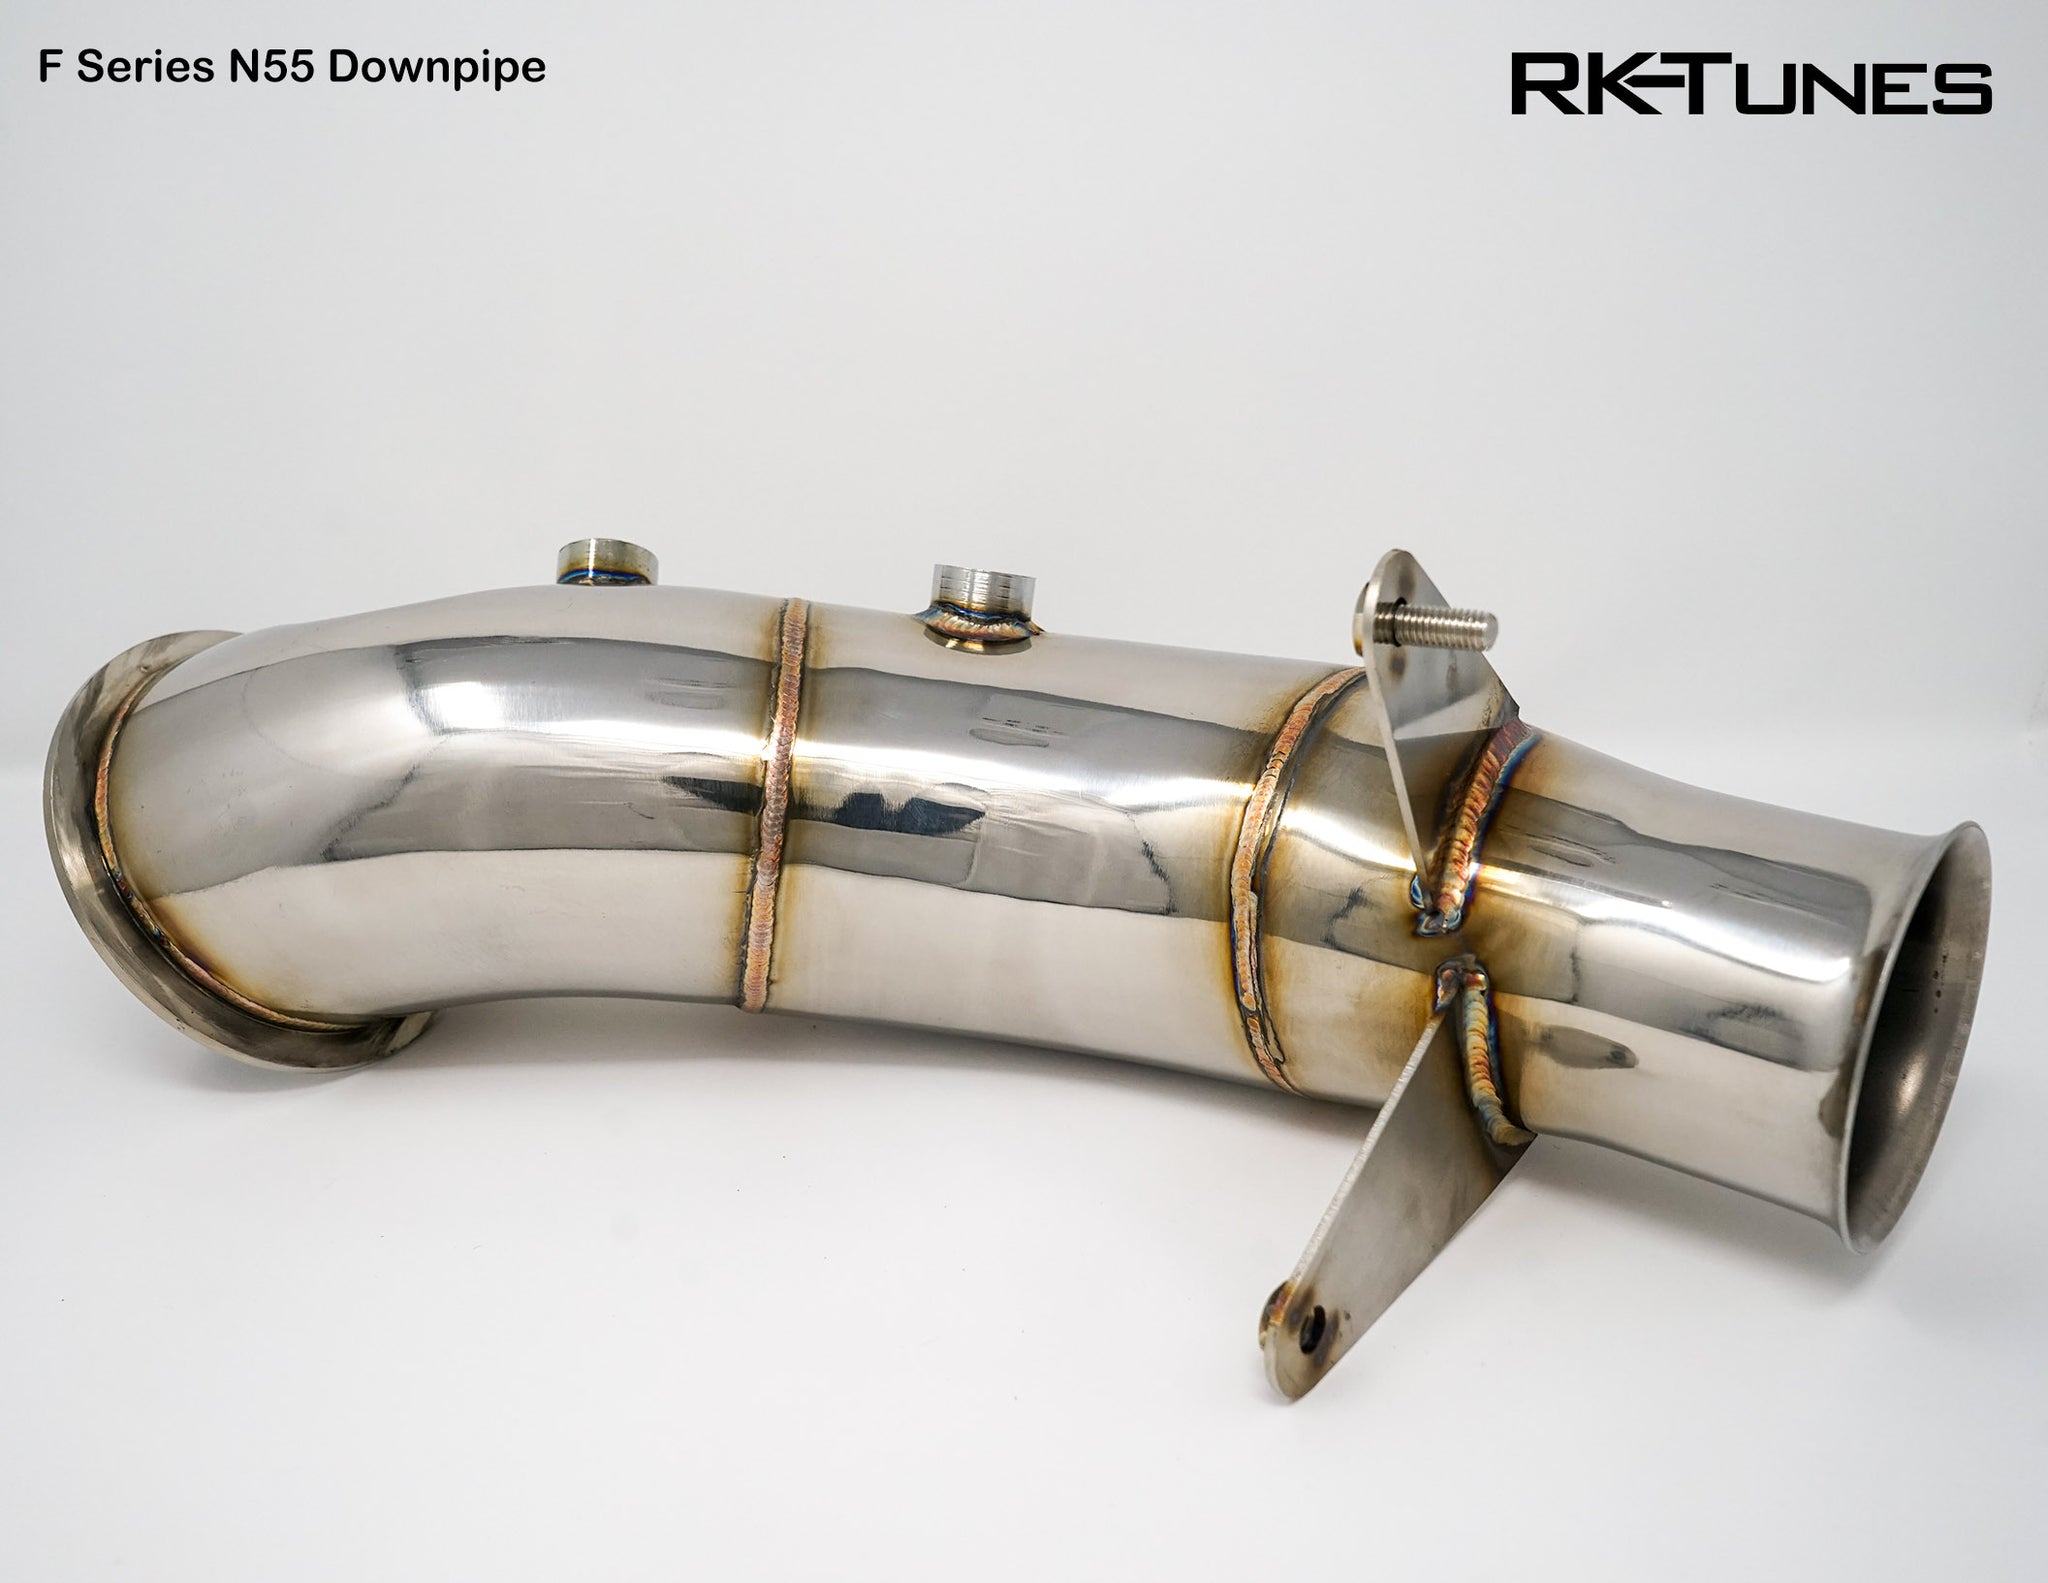 Performance Downpipe for F Series N55 BMW